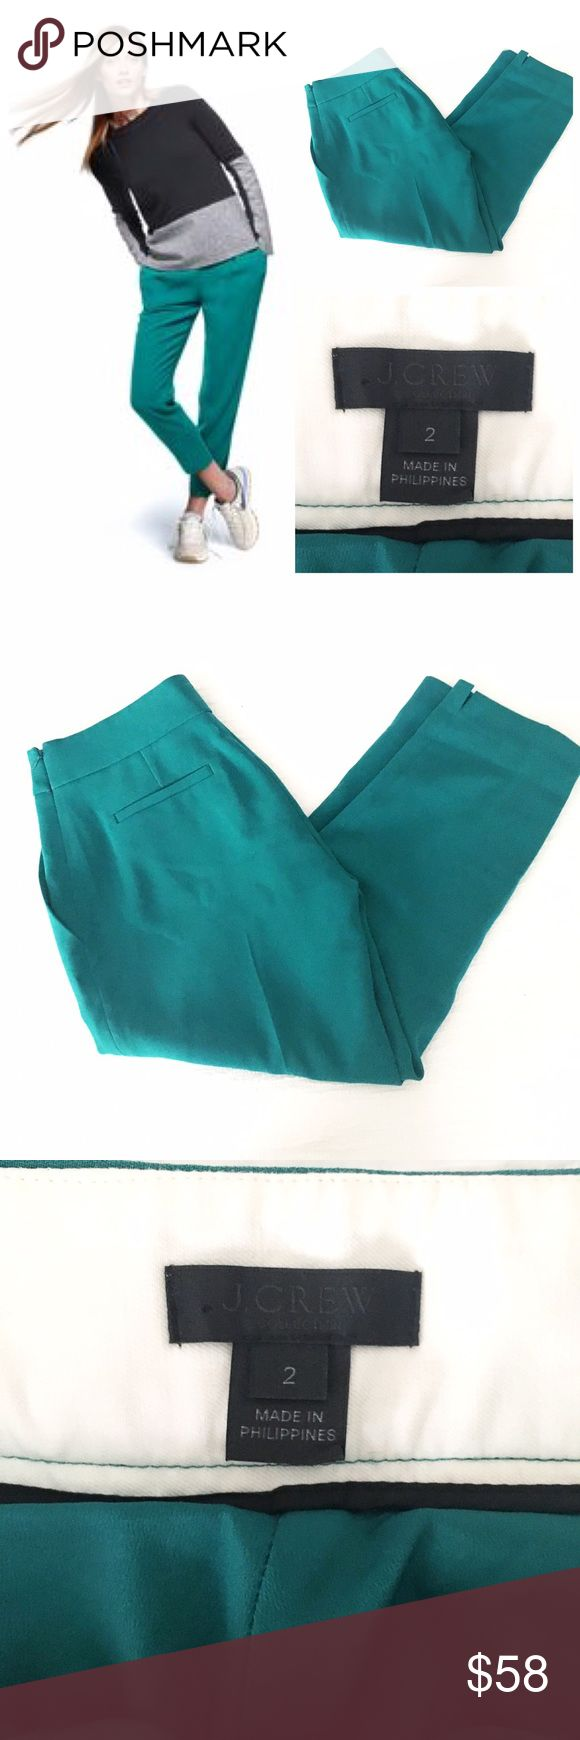 "j.crew collection curator pant Fluidly designed with an easy, draped silhouette, it's a great alternative to the standard work trouser. Poly, side zip, off seam pockets, notches at cuffs, machine wash. Very gently worn condition, only flaw to note is some mild piling on the left front pocket. Laid flat measures, 14.75"" across the waist, 20"" across the fullest part of the hip, 10"" rise, 24"" inseam. A great pair of pants for us hippier ladies. Runs large, fits closer to a size 4 IMO. J. Crew…"